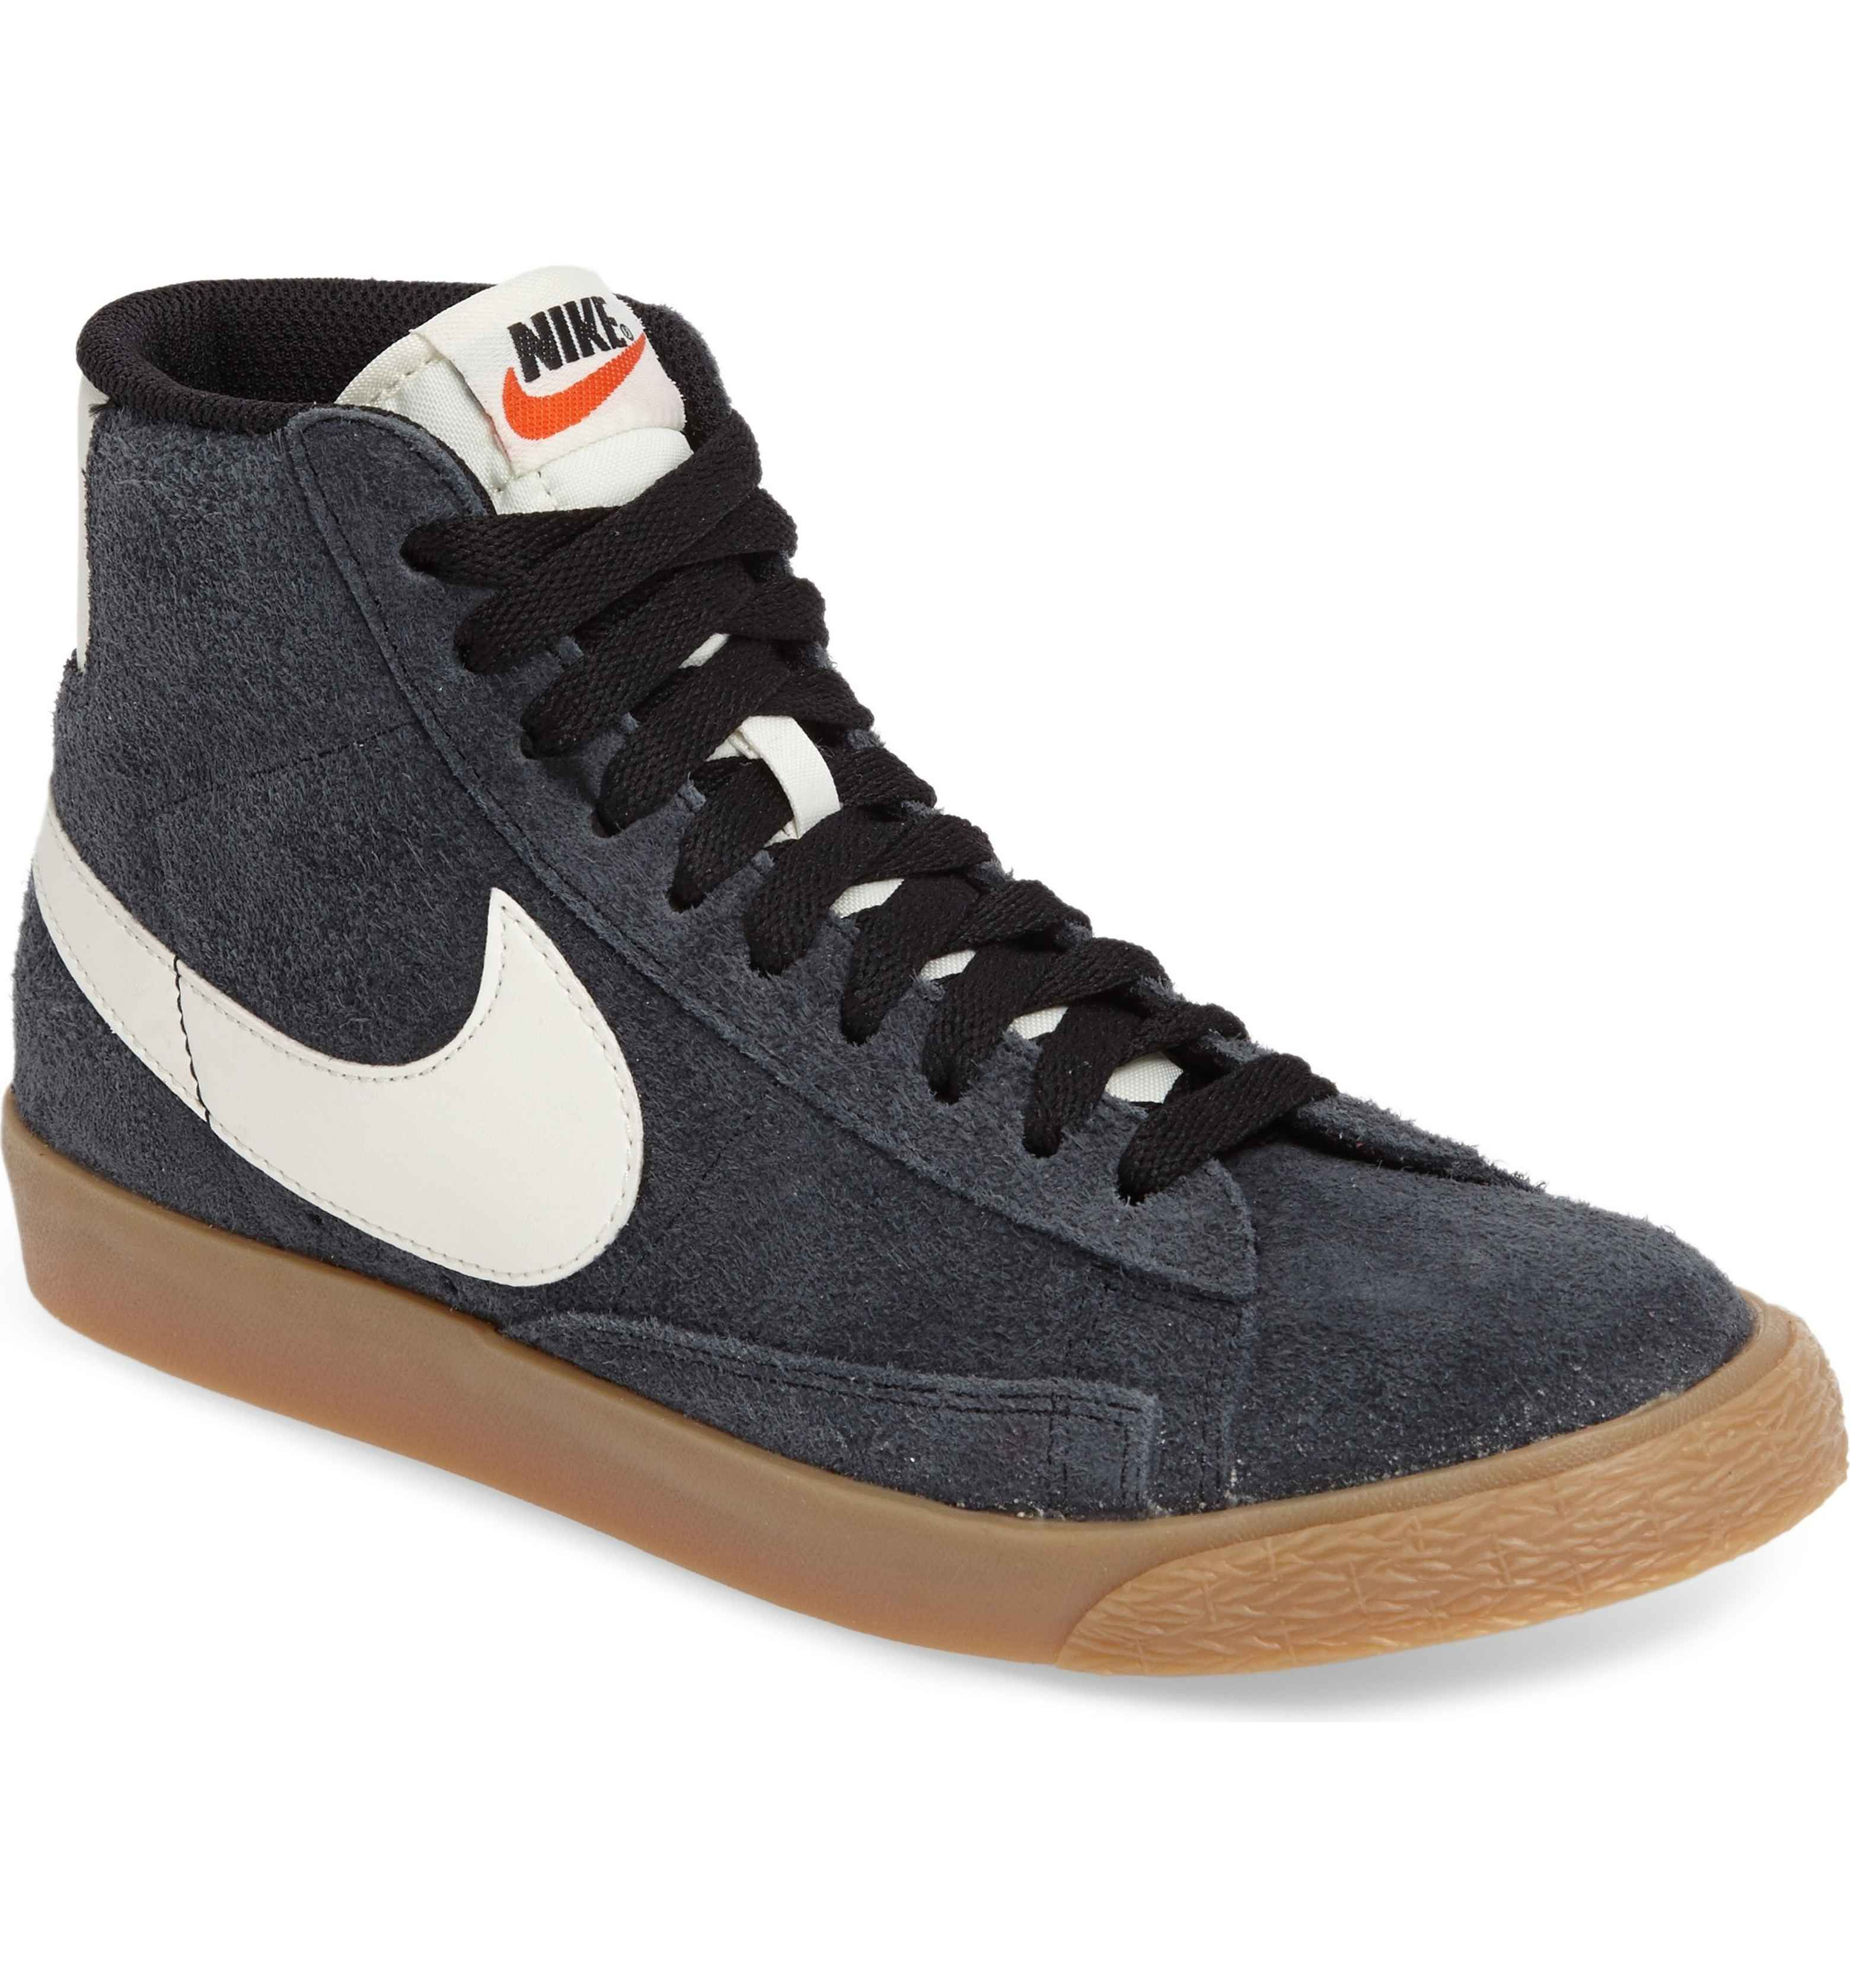 buy online b1cd1 a4d92  Nike  Blazer  Vintage High Top Basketball Sneaker (Women) in Black Sail Gum  Yellow Sail,  100